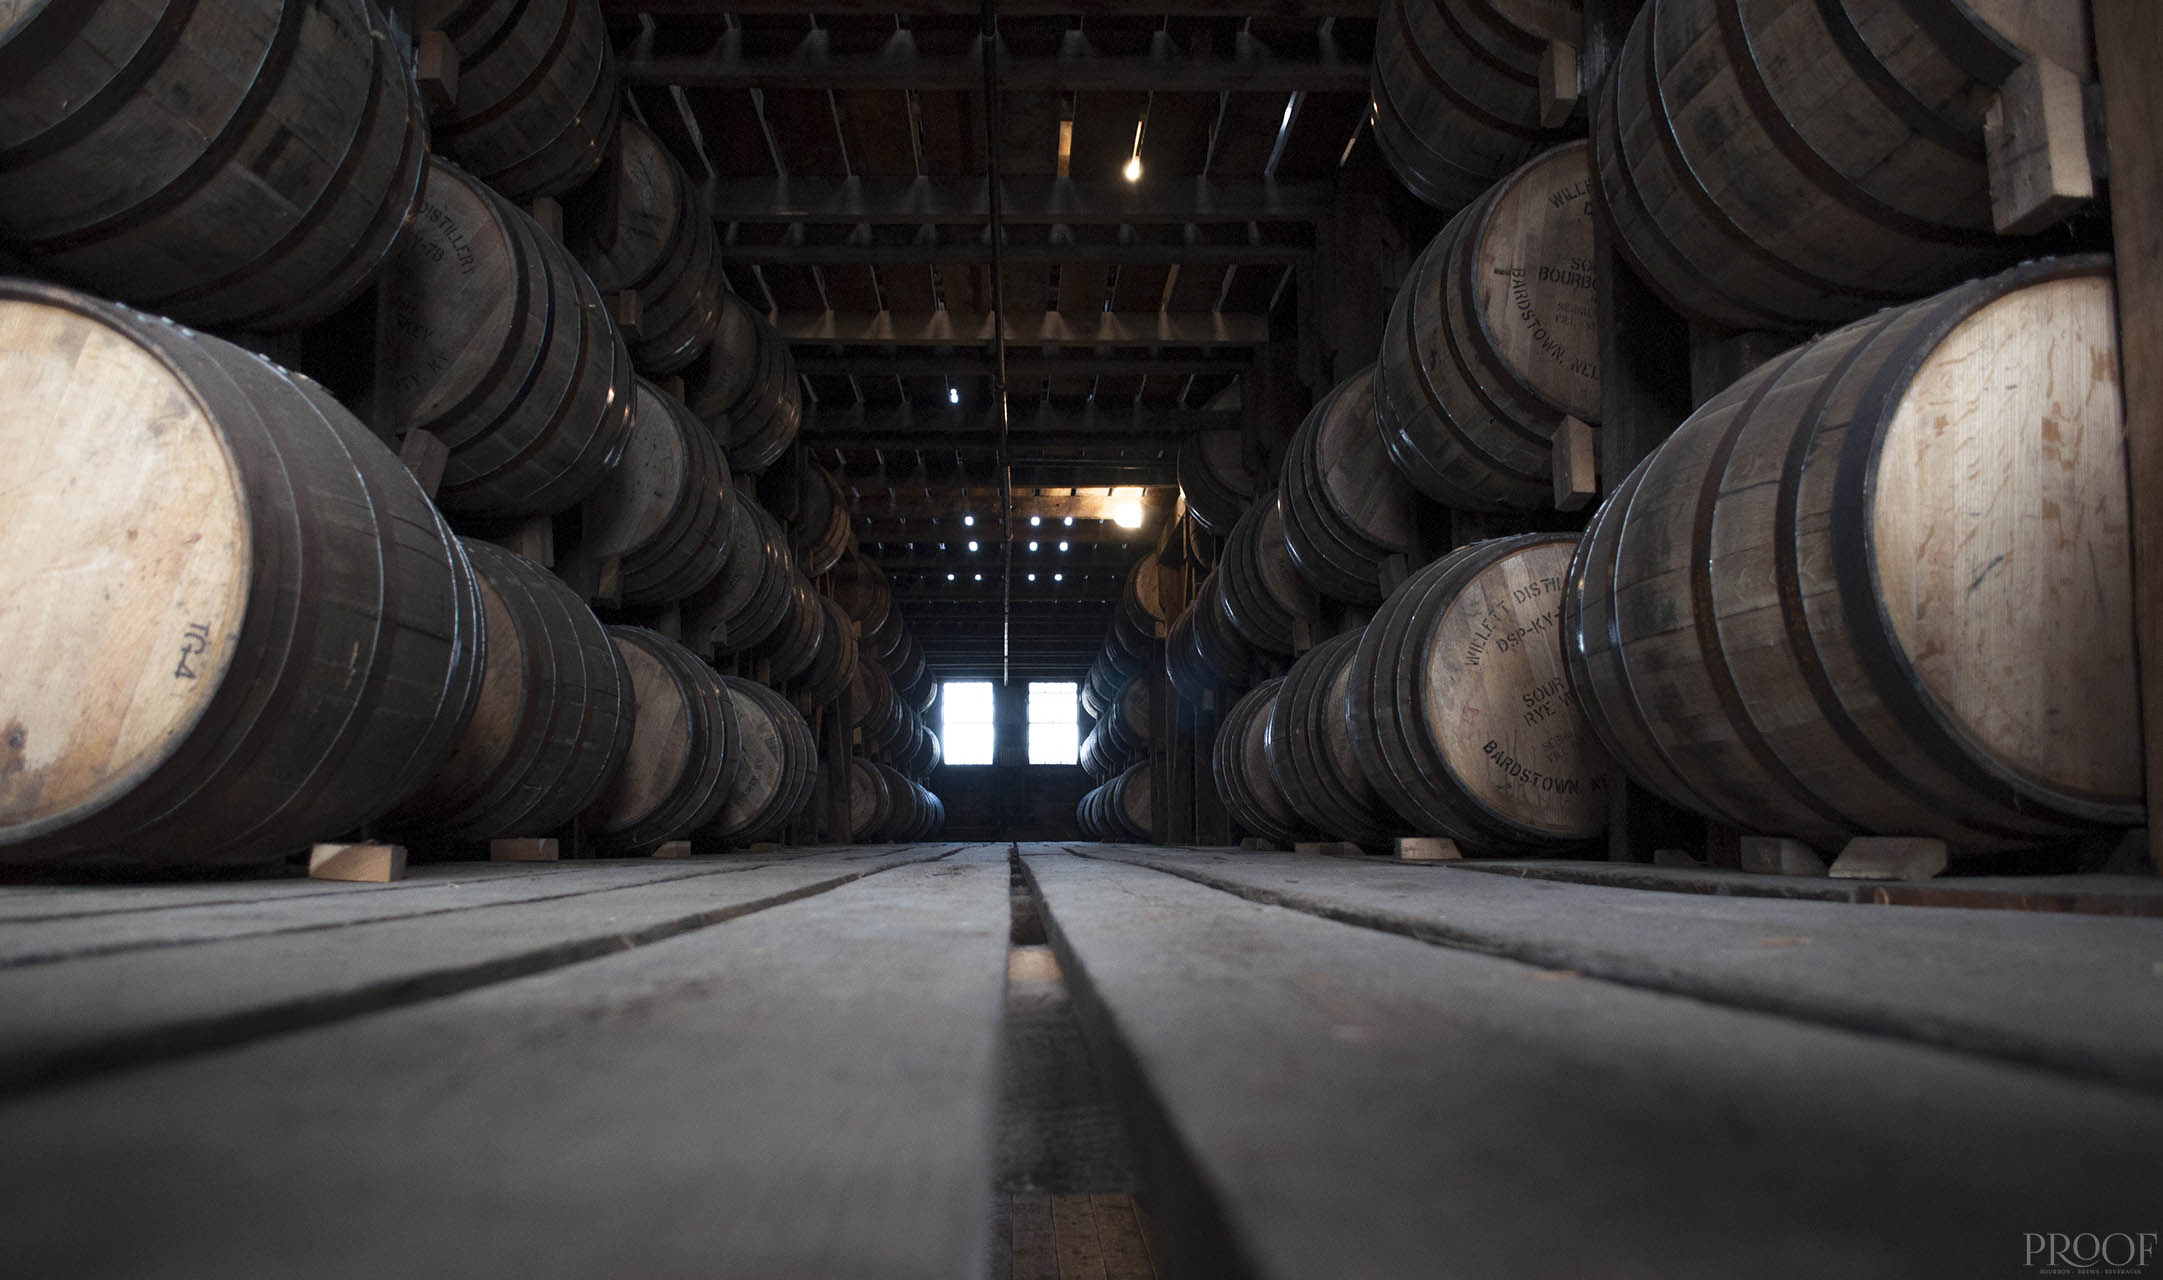 dark image of bourbon barrels stacked in a barn on both sides